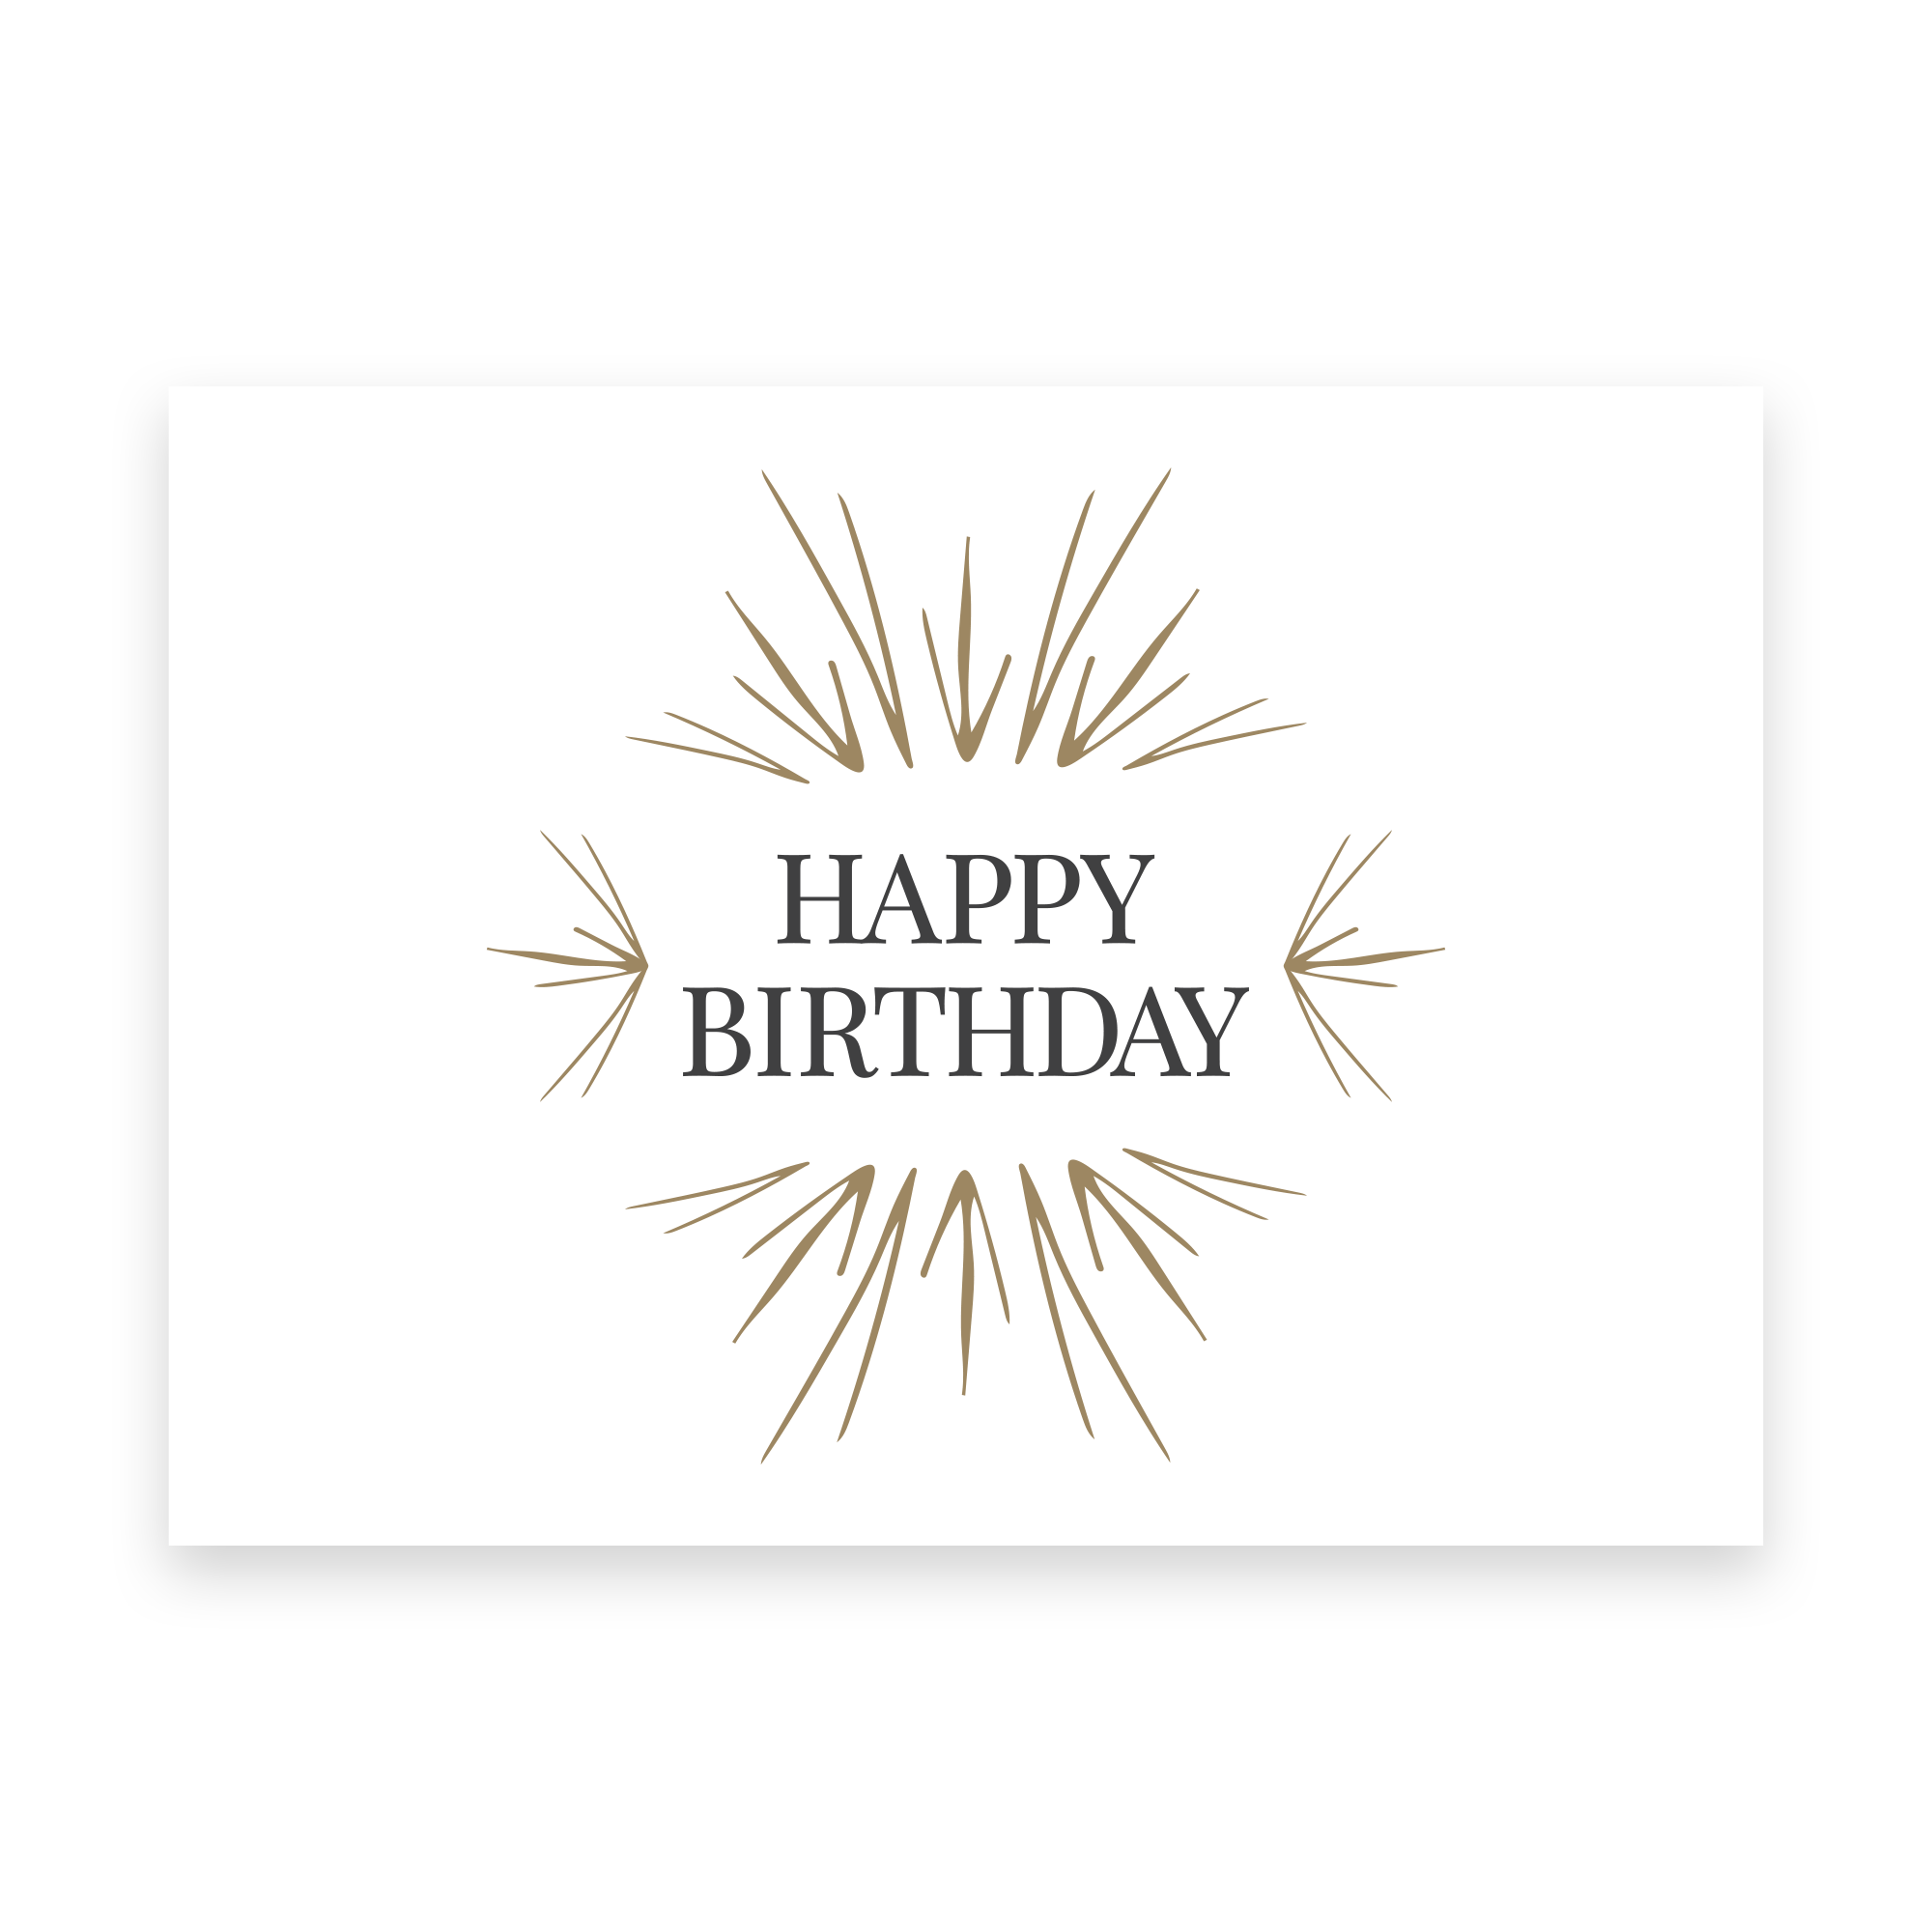 Birthday Greeting Card - Scripted Jewelry - Handwriting Jewelry